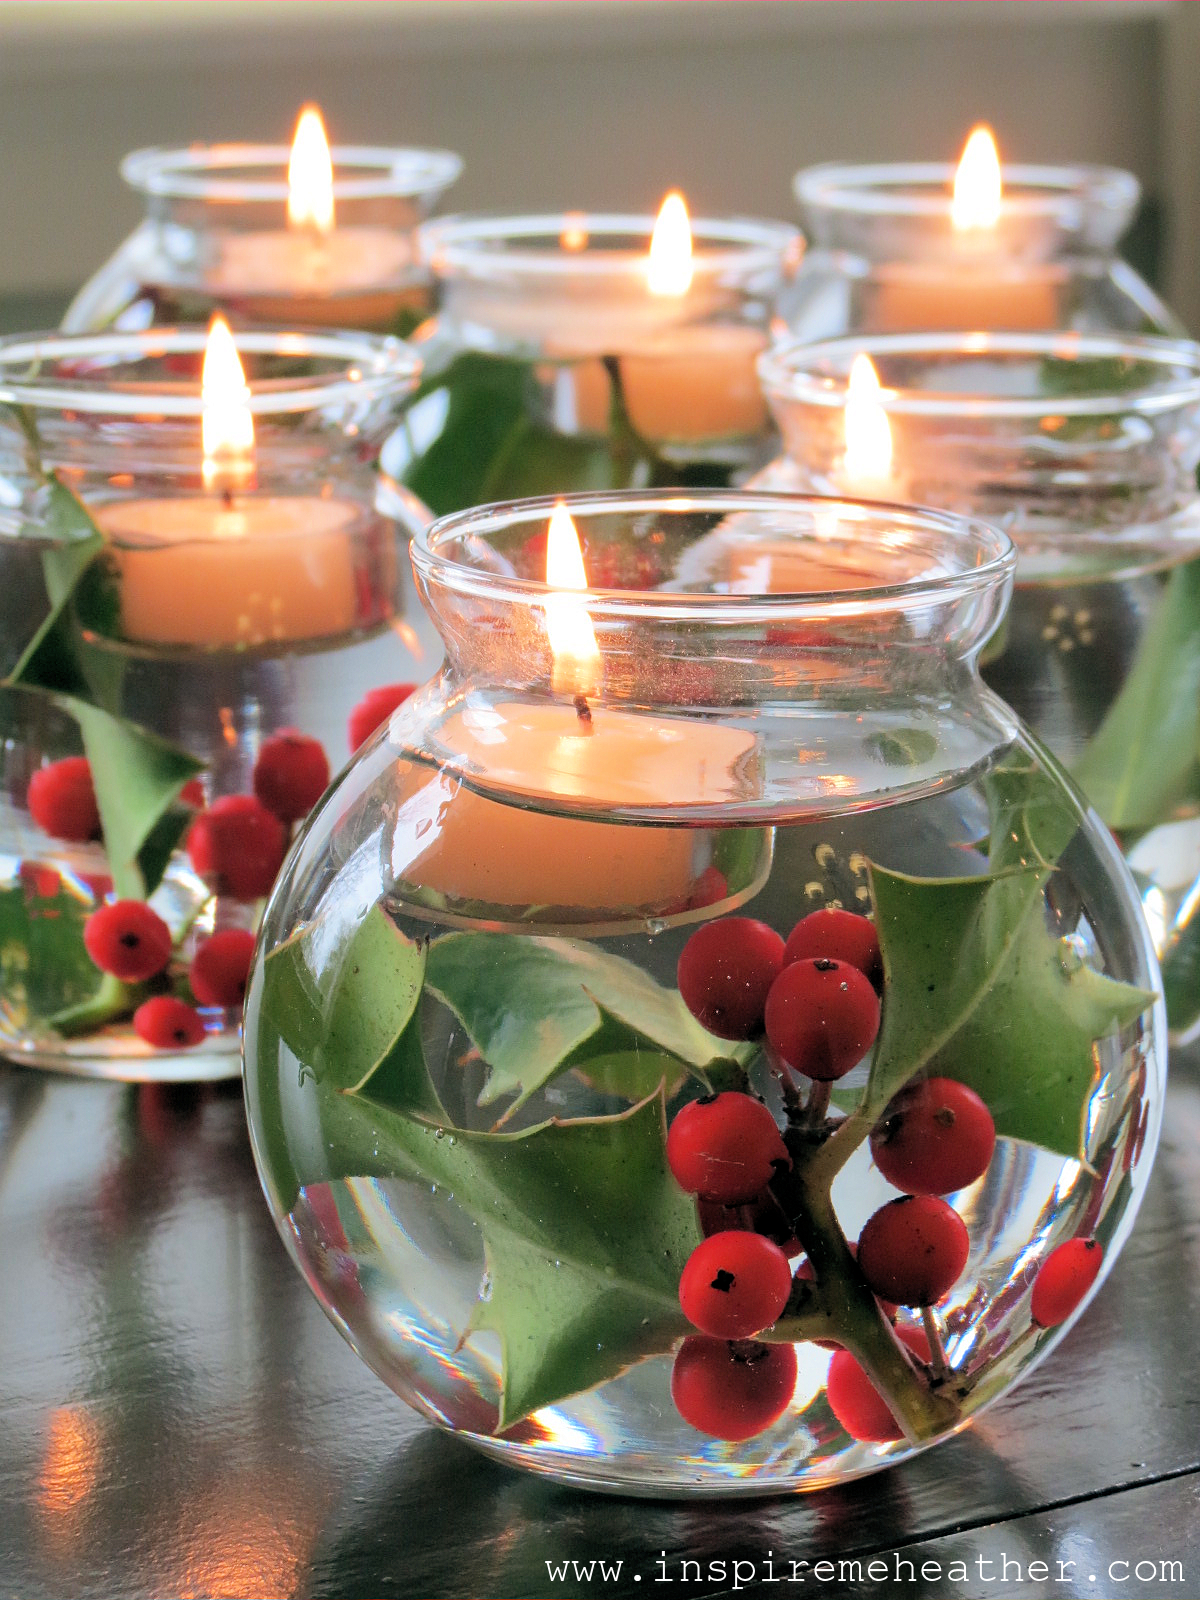 10 Attractive Ideas For Christmas Decorations To Make 40 essential last minute christmas decoration ideas christmas